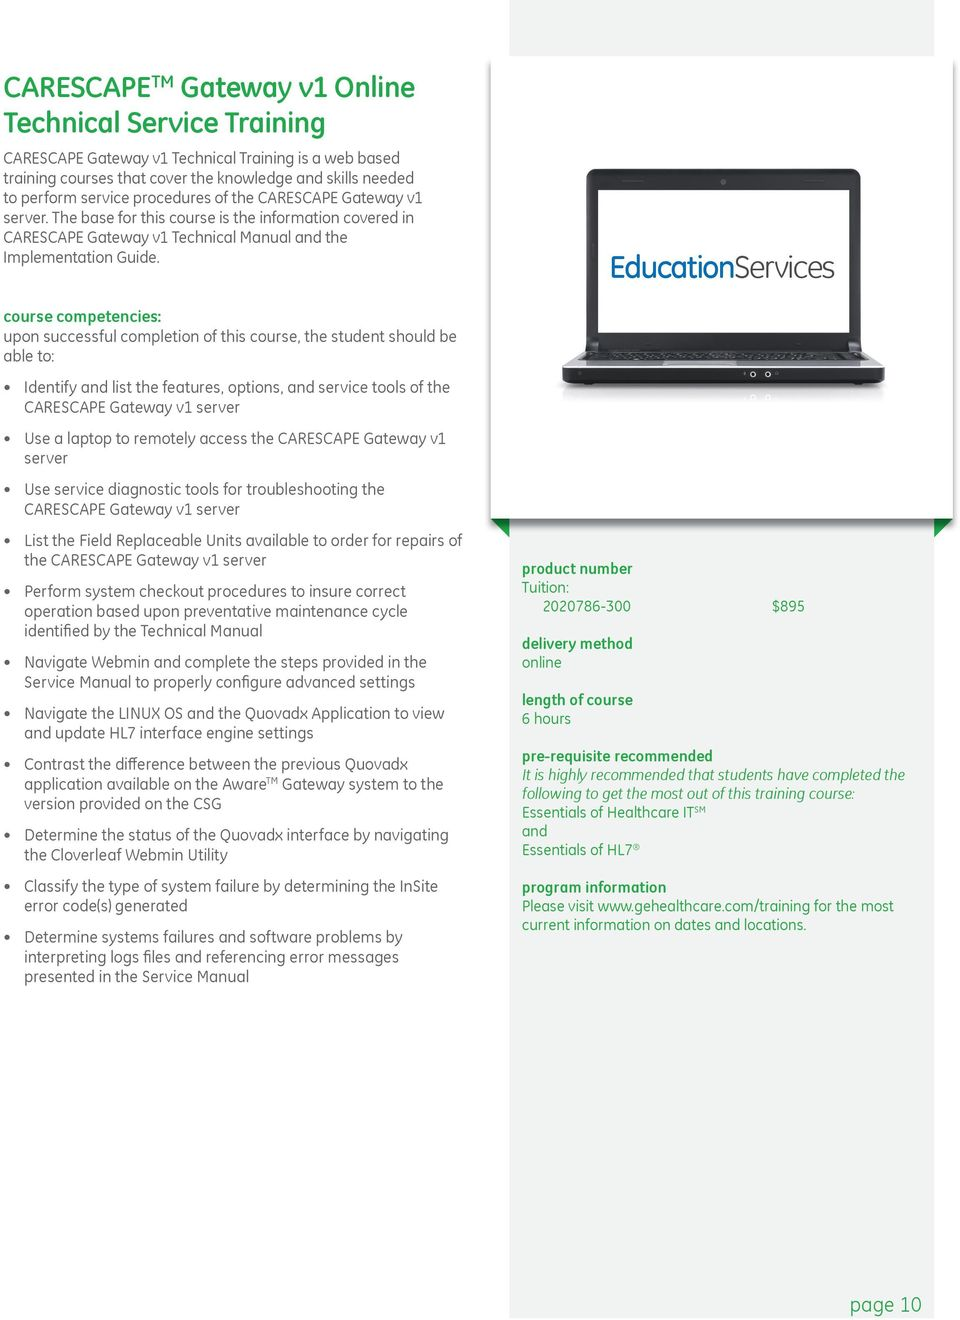 EducationServices course competencies: upon successful completion of this course, the student should be able to: Identify and list the features, options, and service tools of the CARESCAPE Gateway v1